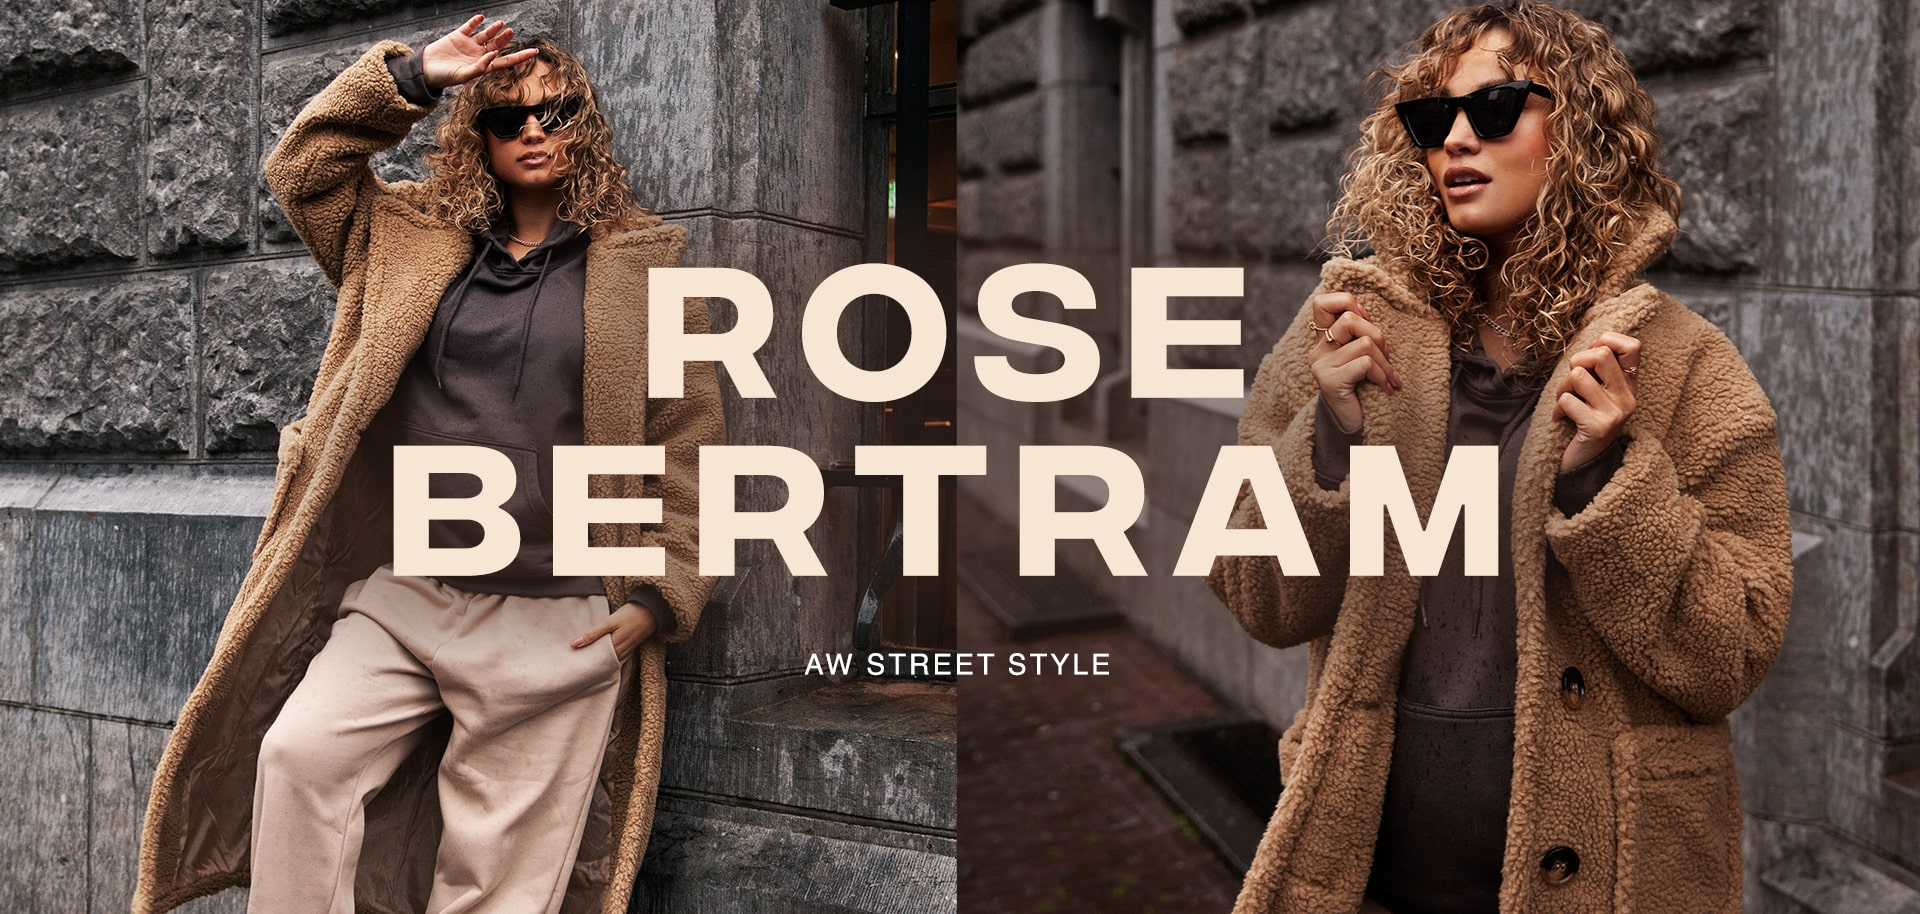 Rose Bertram Lookbook Image 1 Desktop